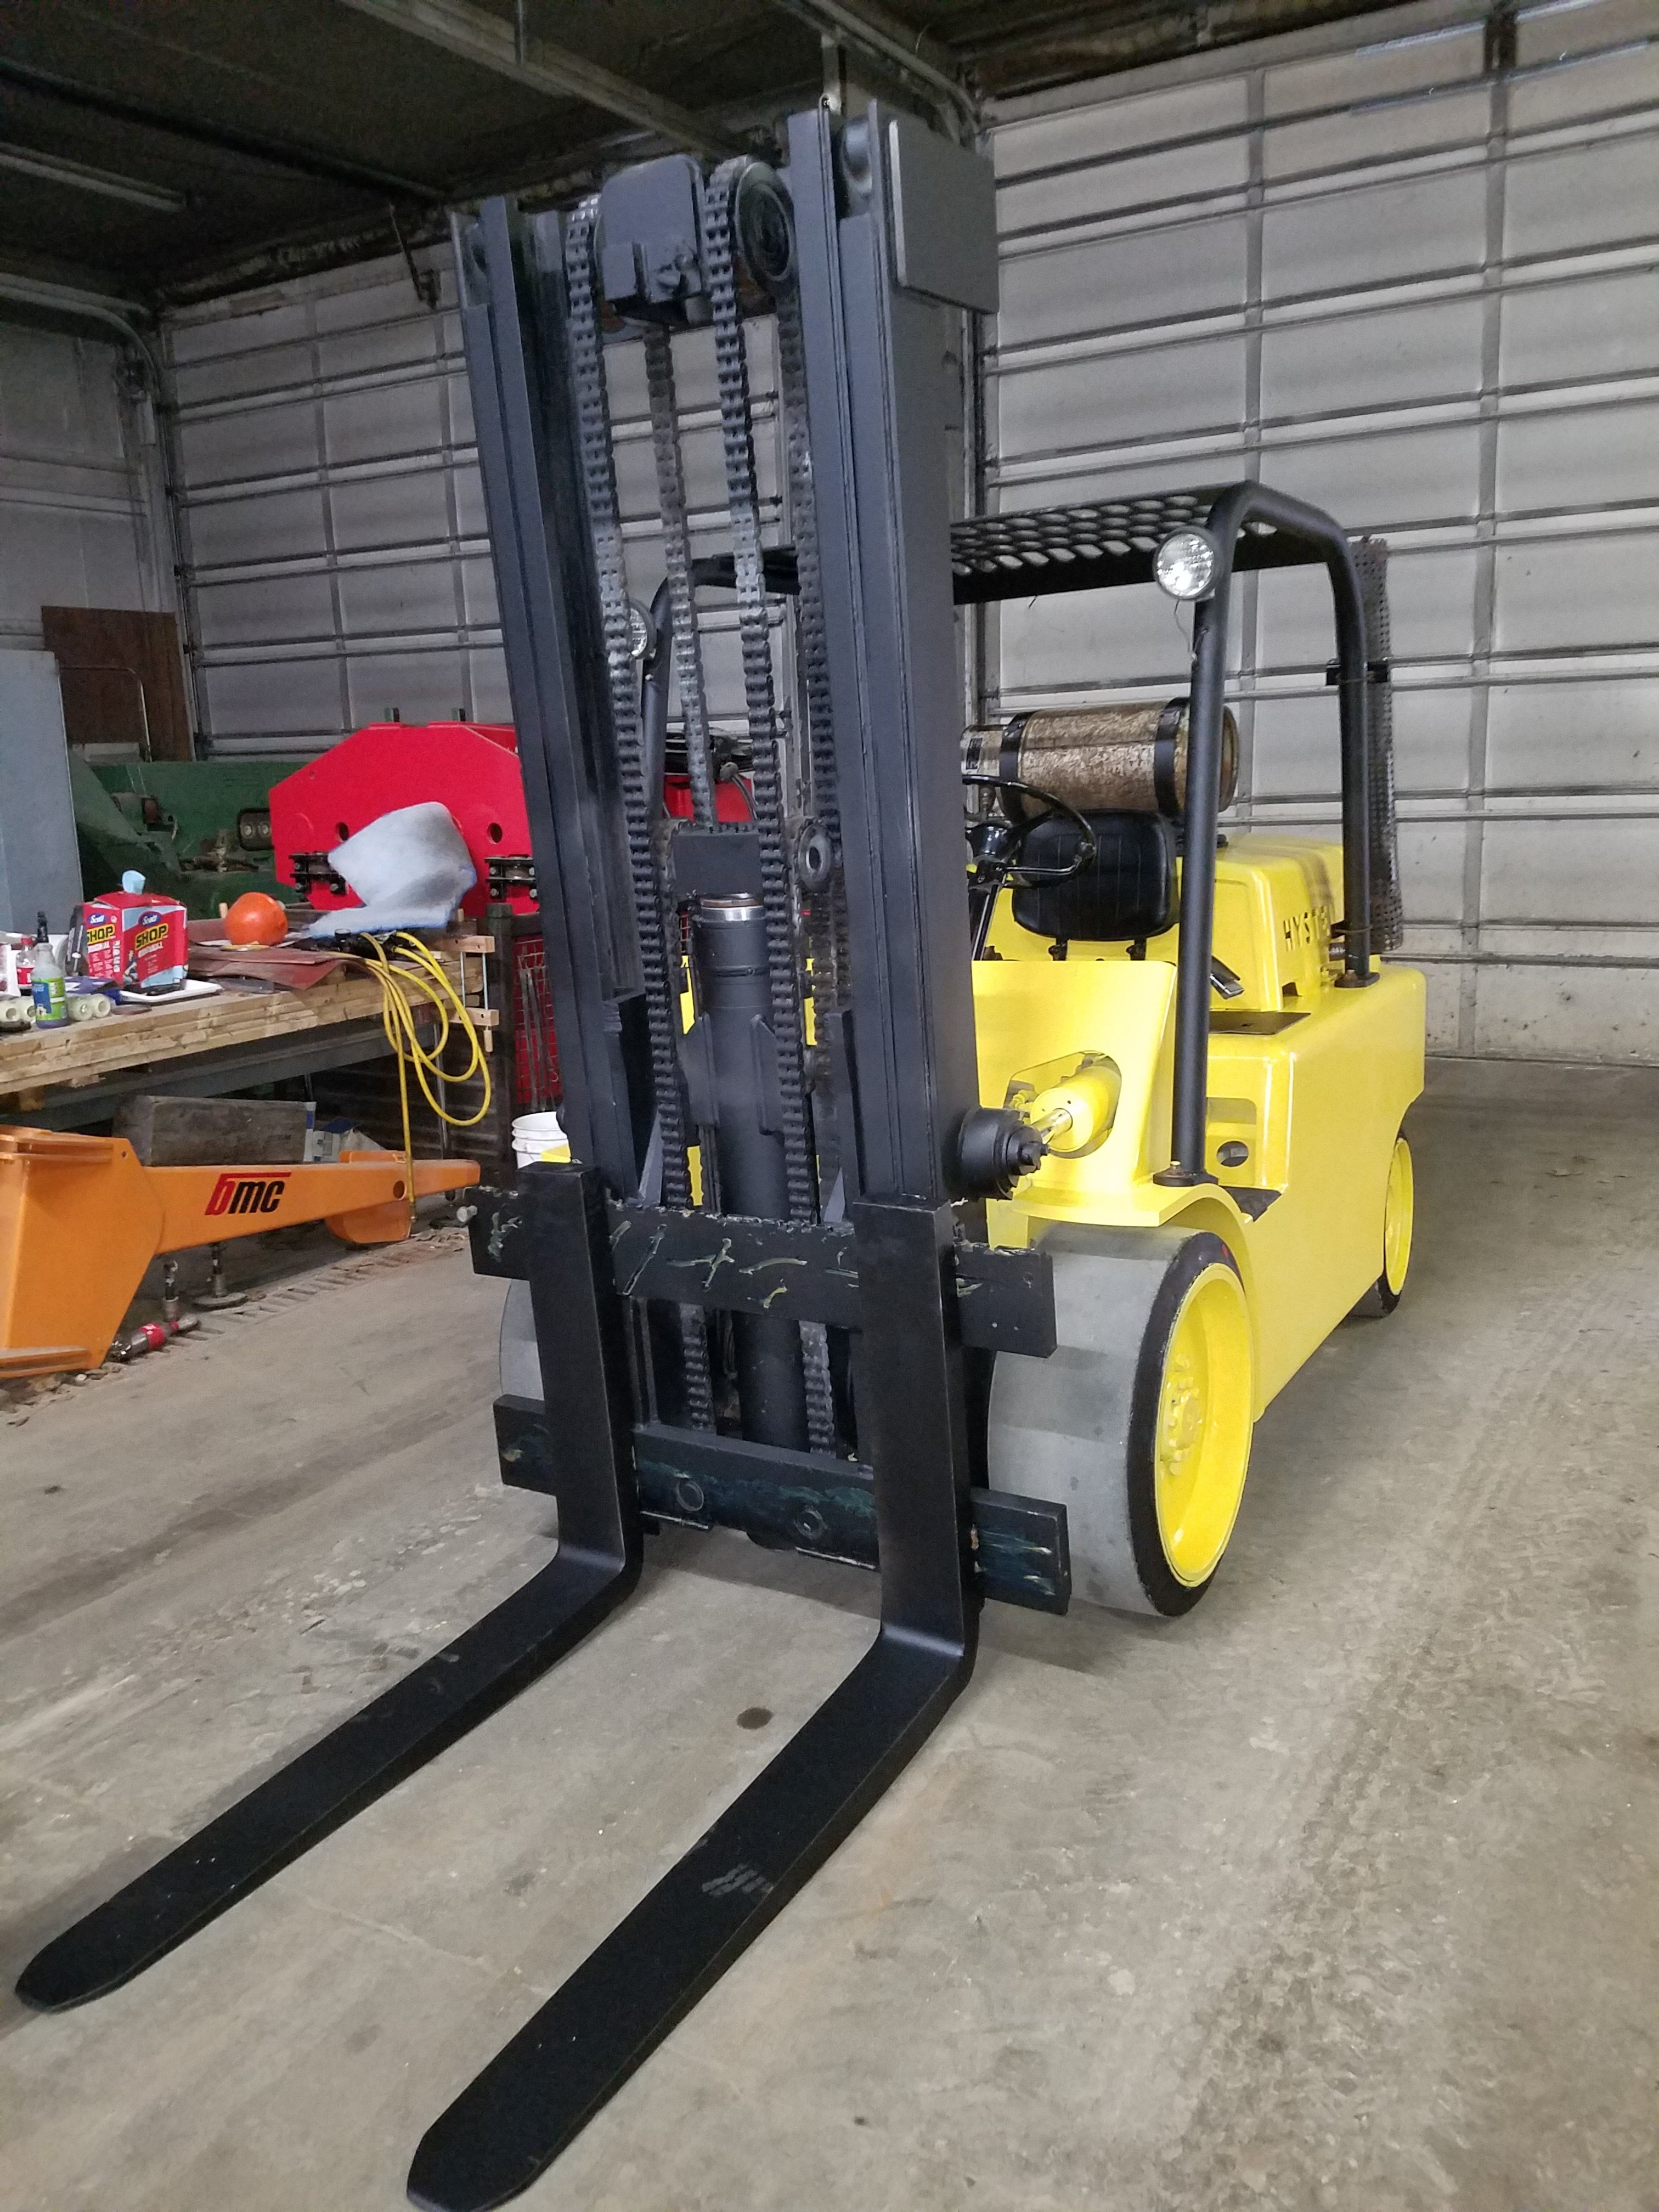 15,000lb. Capacity Hyster S-150 Forklift For Sale